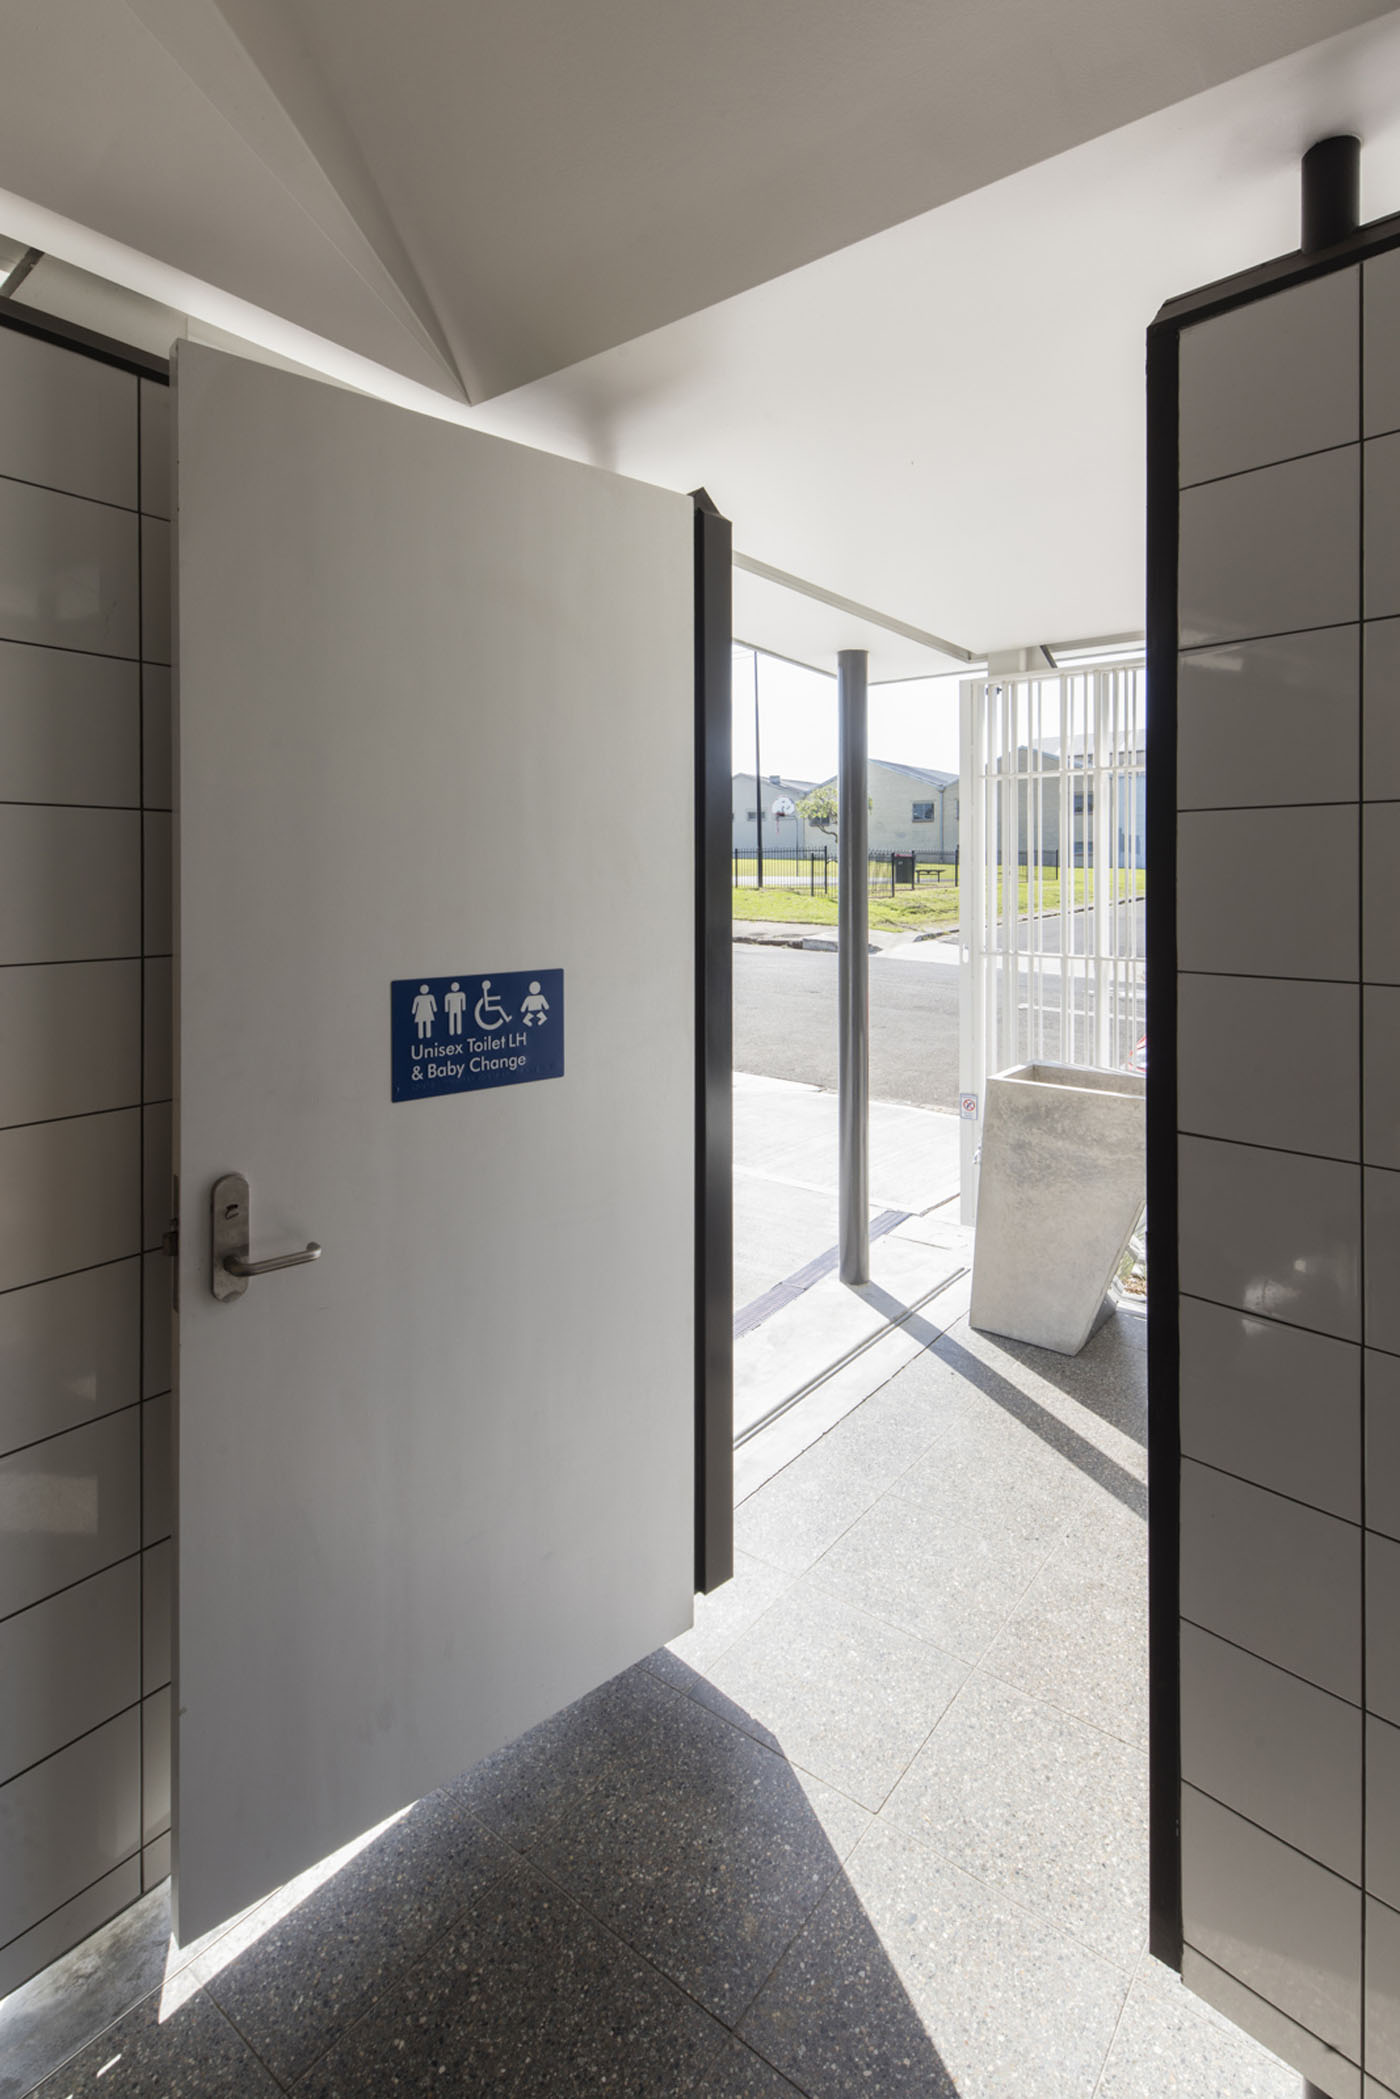 Sydenham Green Amenities by Sam Crawford Architects, Sydney. Accessible toilets.